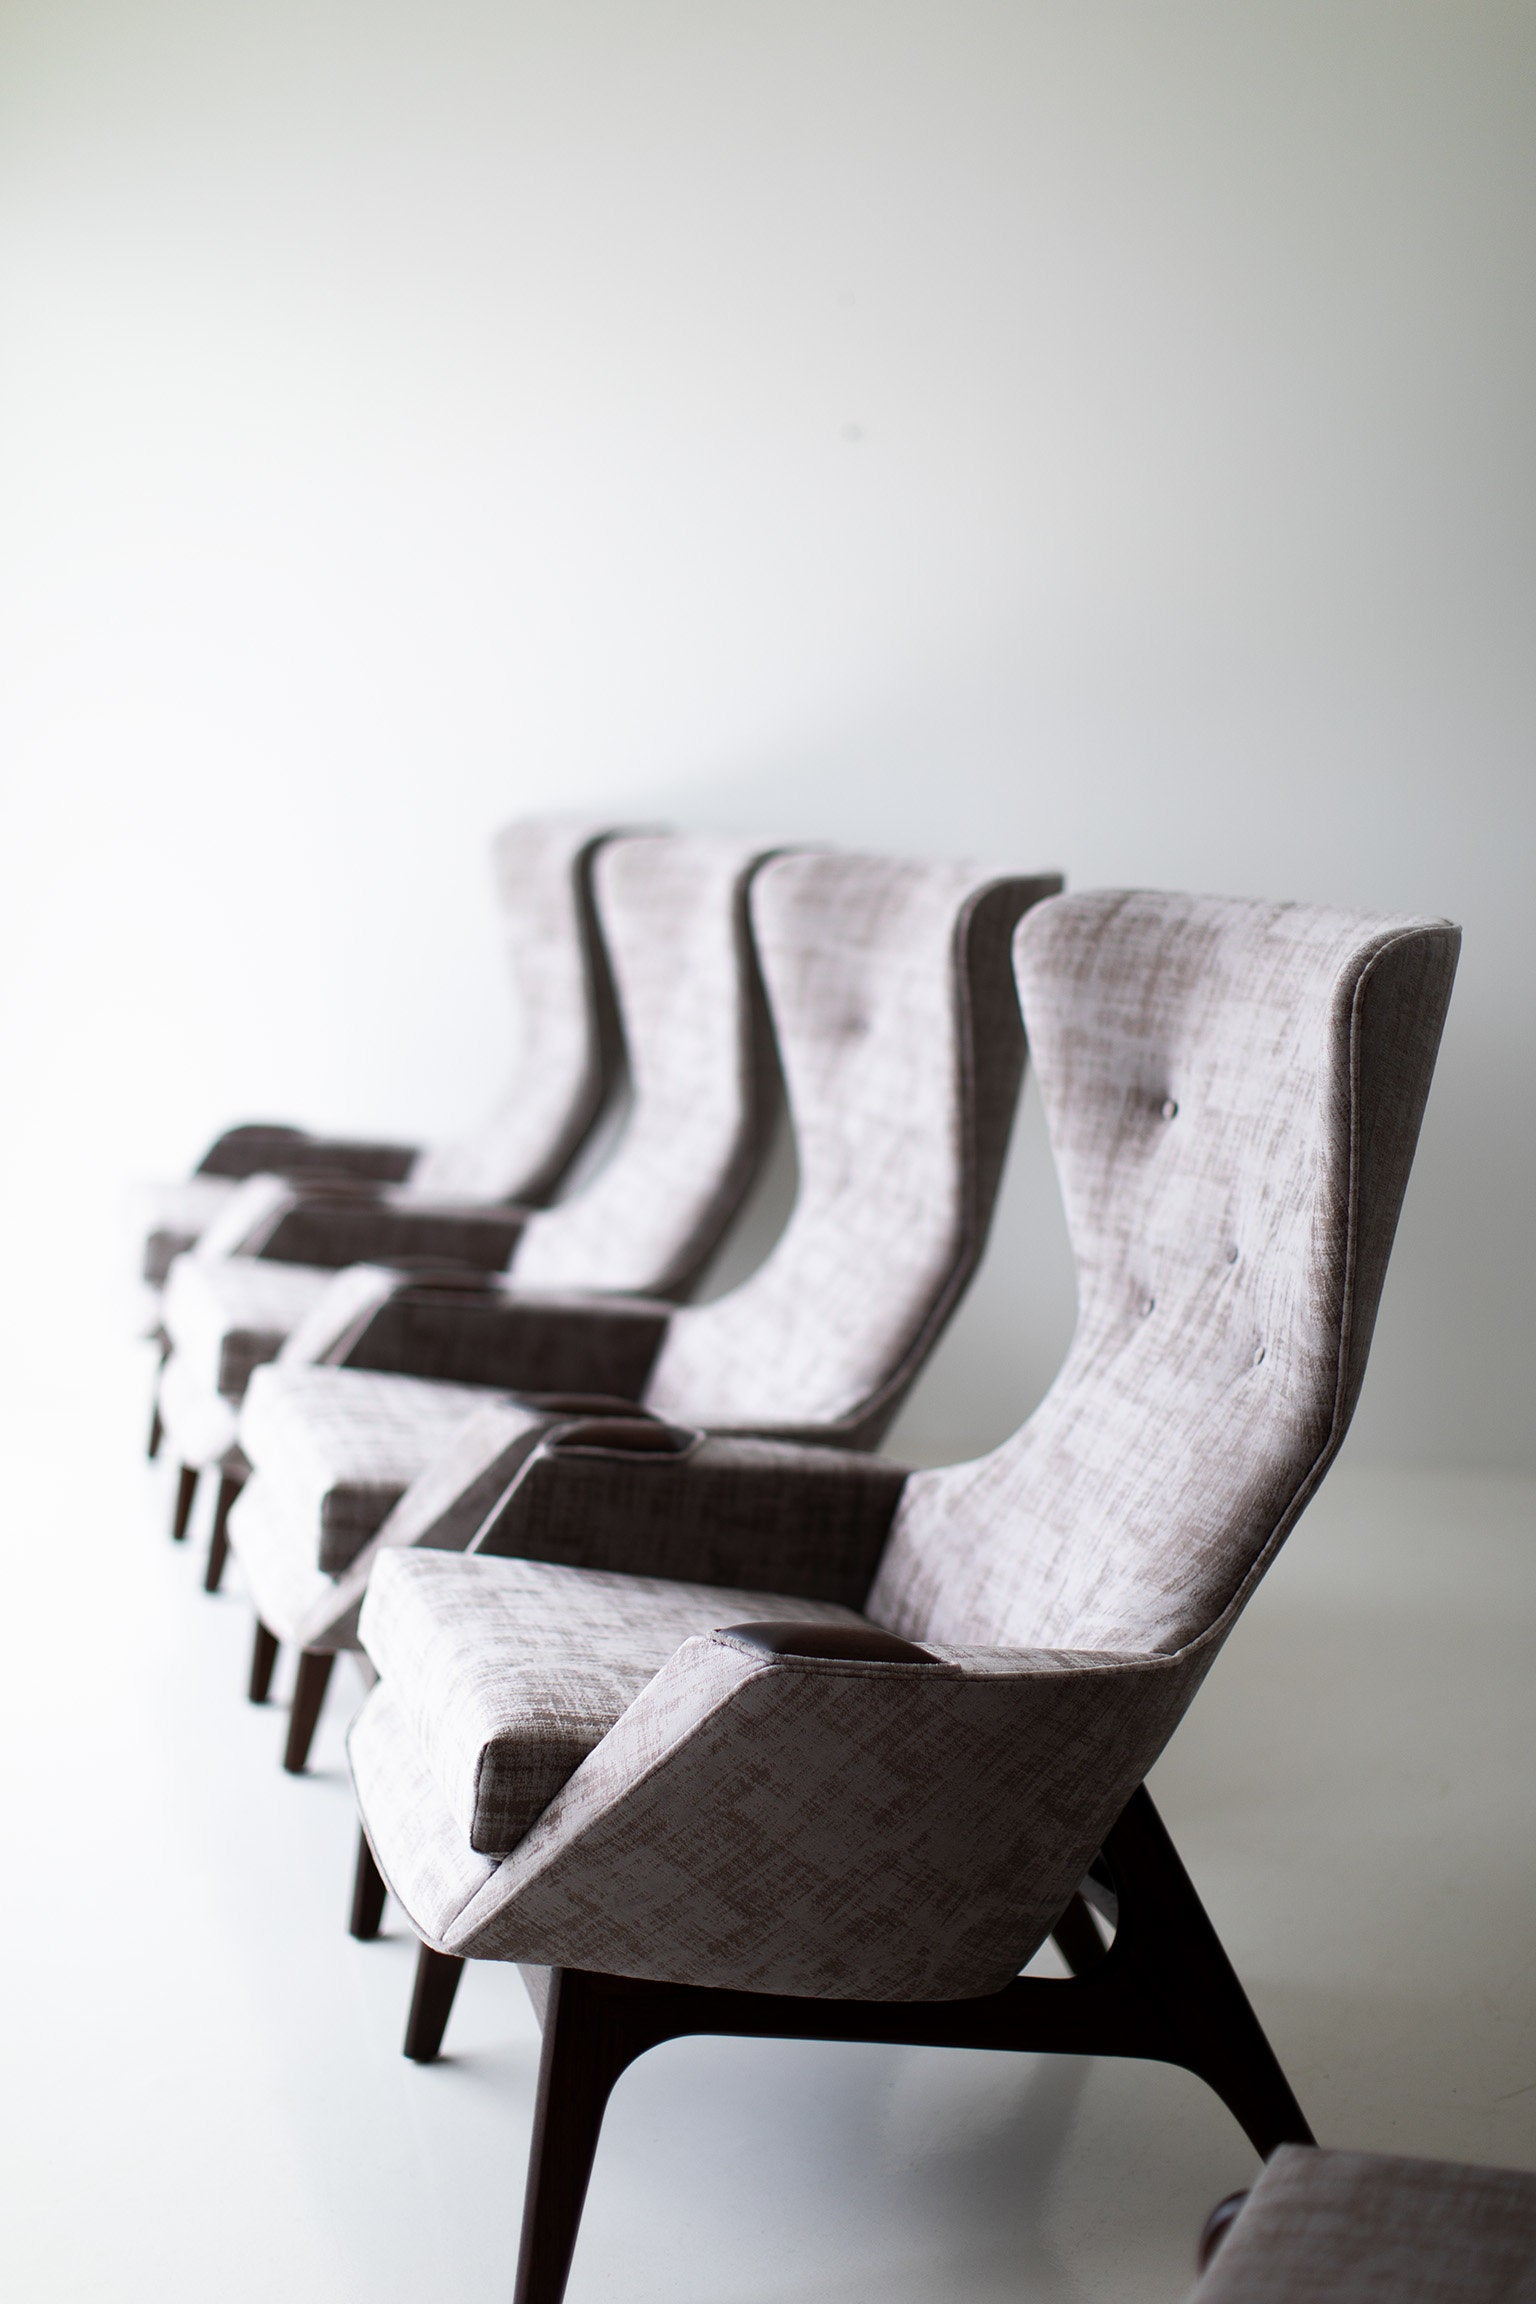 I07A4890-Small-Wing-Chairs-1410-05